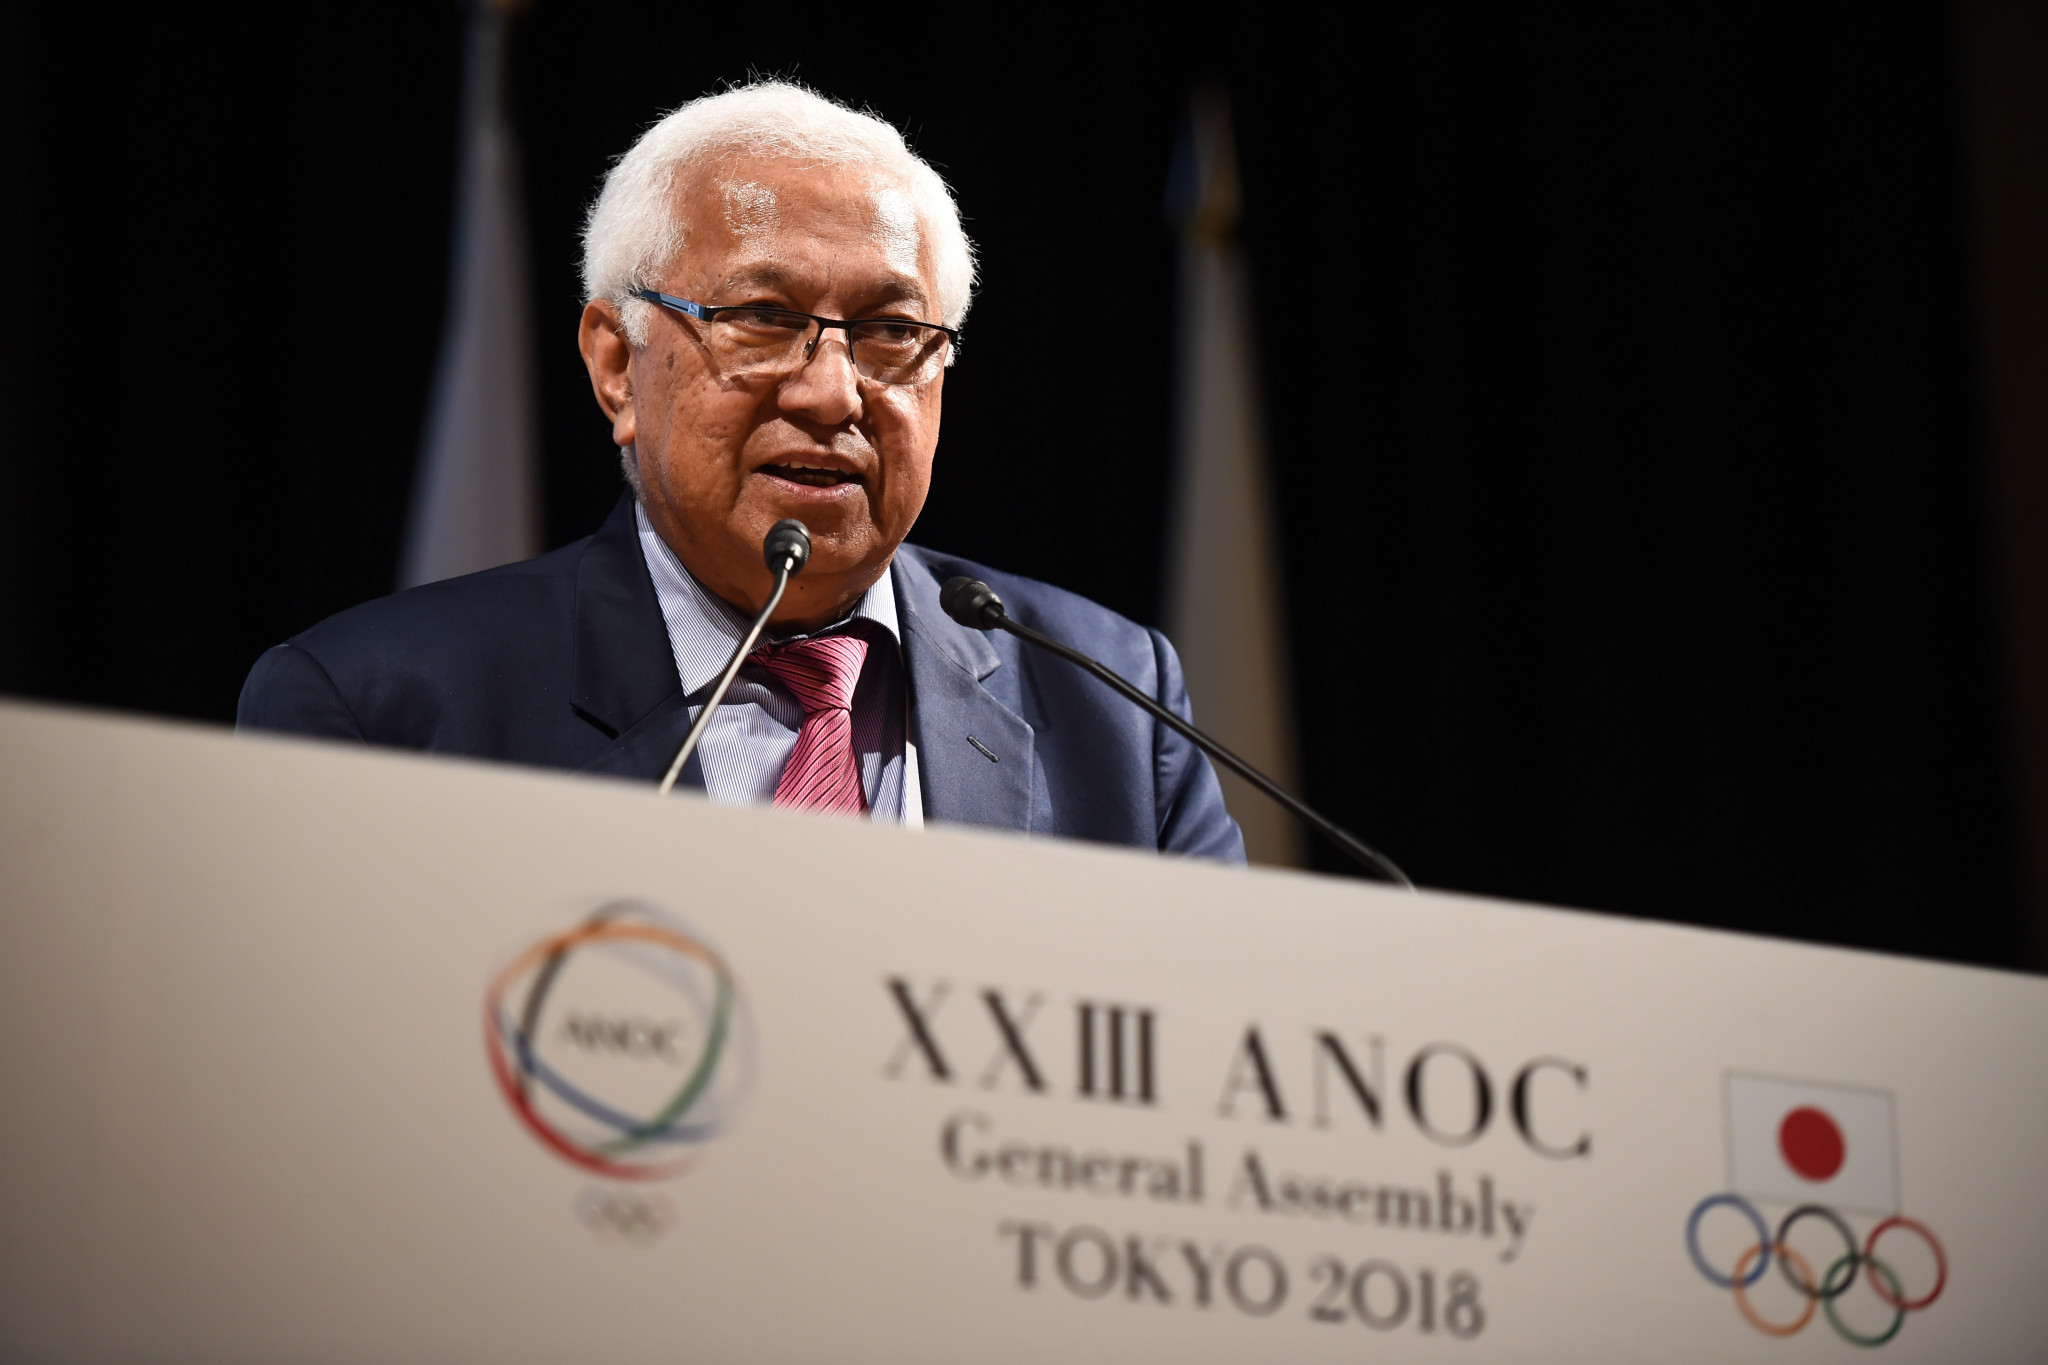 Robin Mitchell holds the interim Presidency of ANOC ©Getty Images